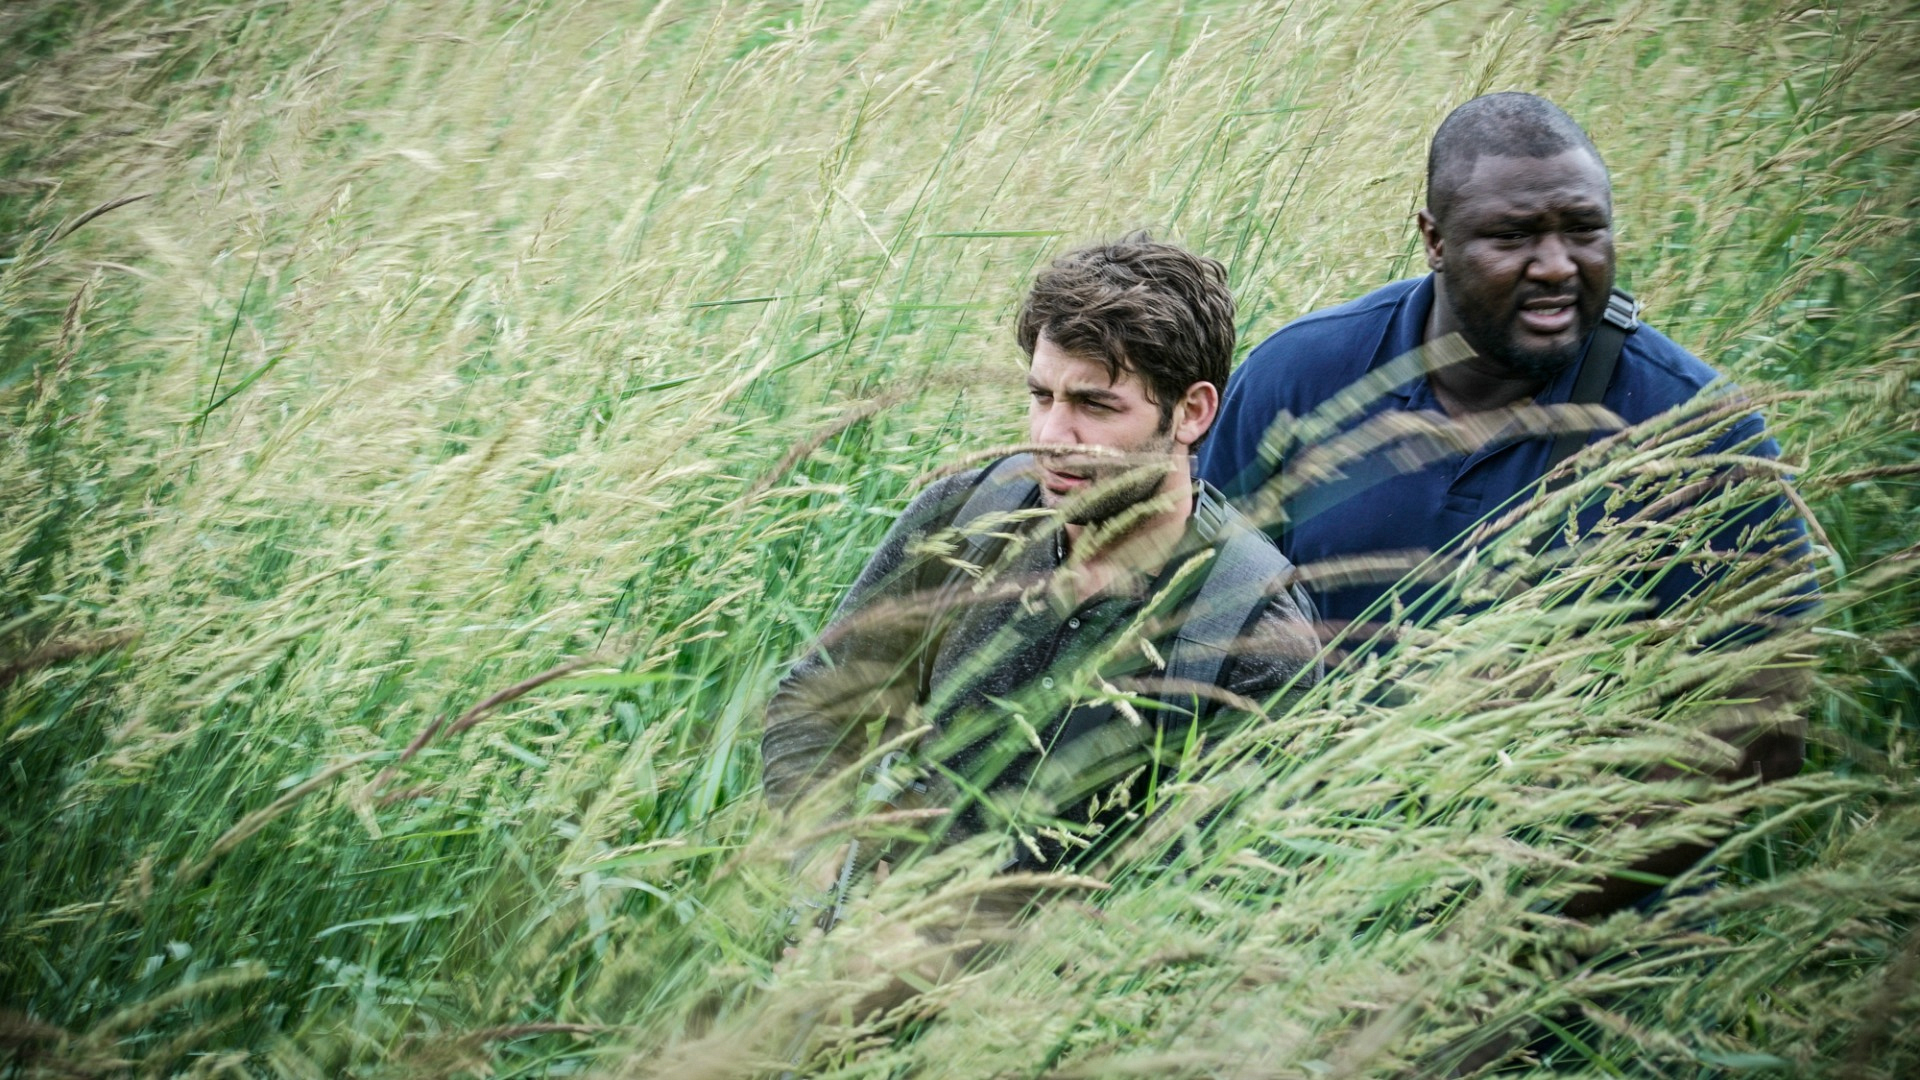 Jackson and Abraham move through high grass in their search.